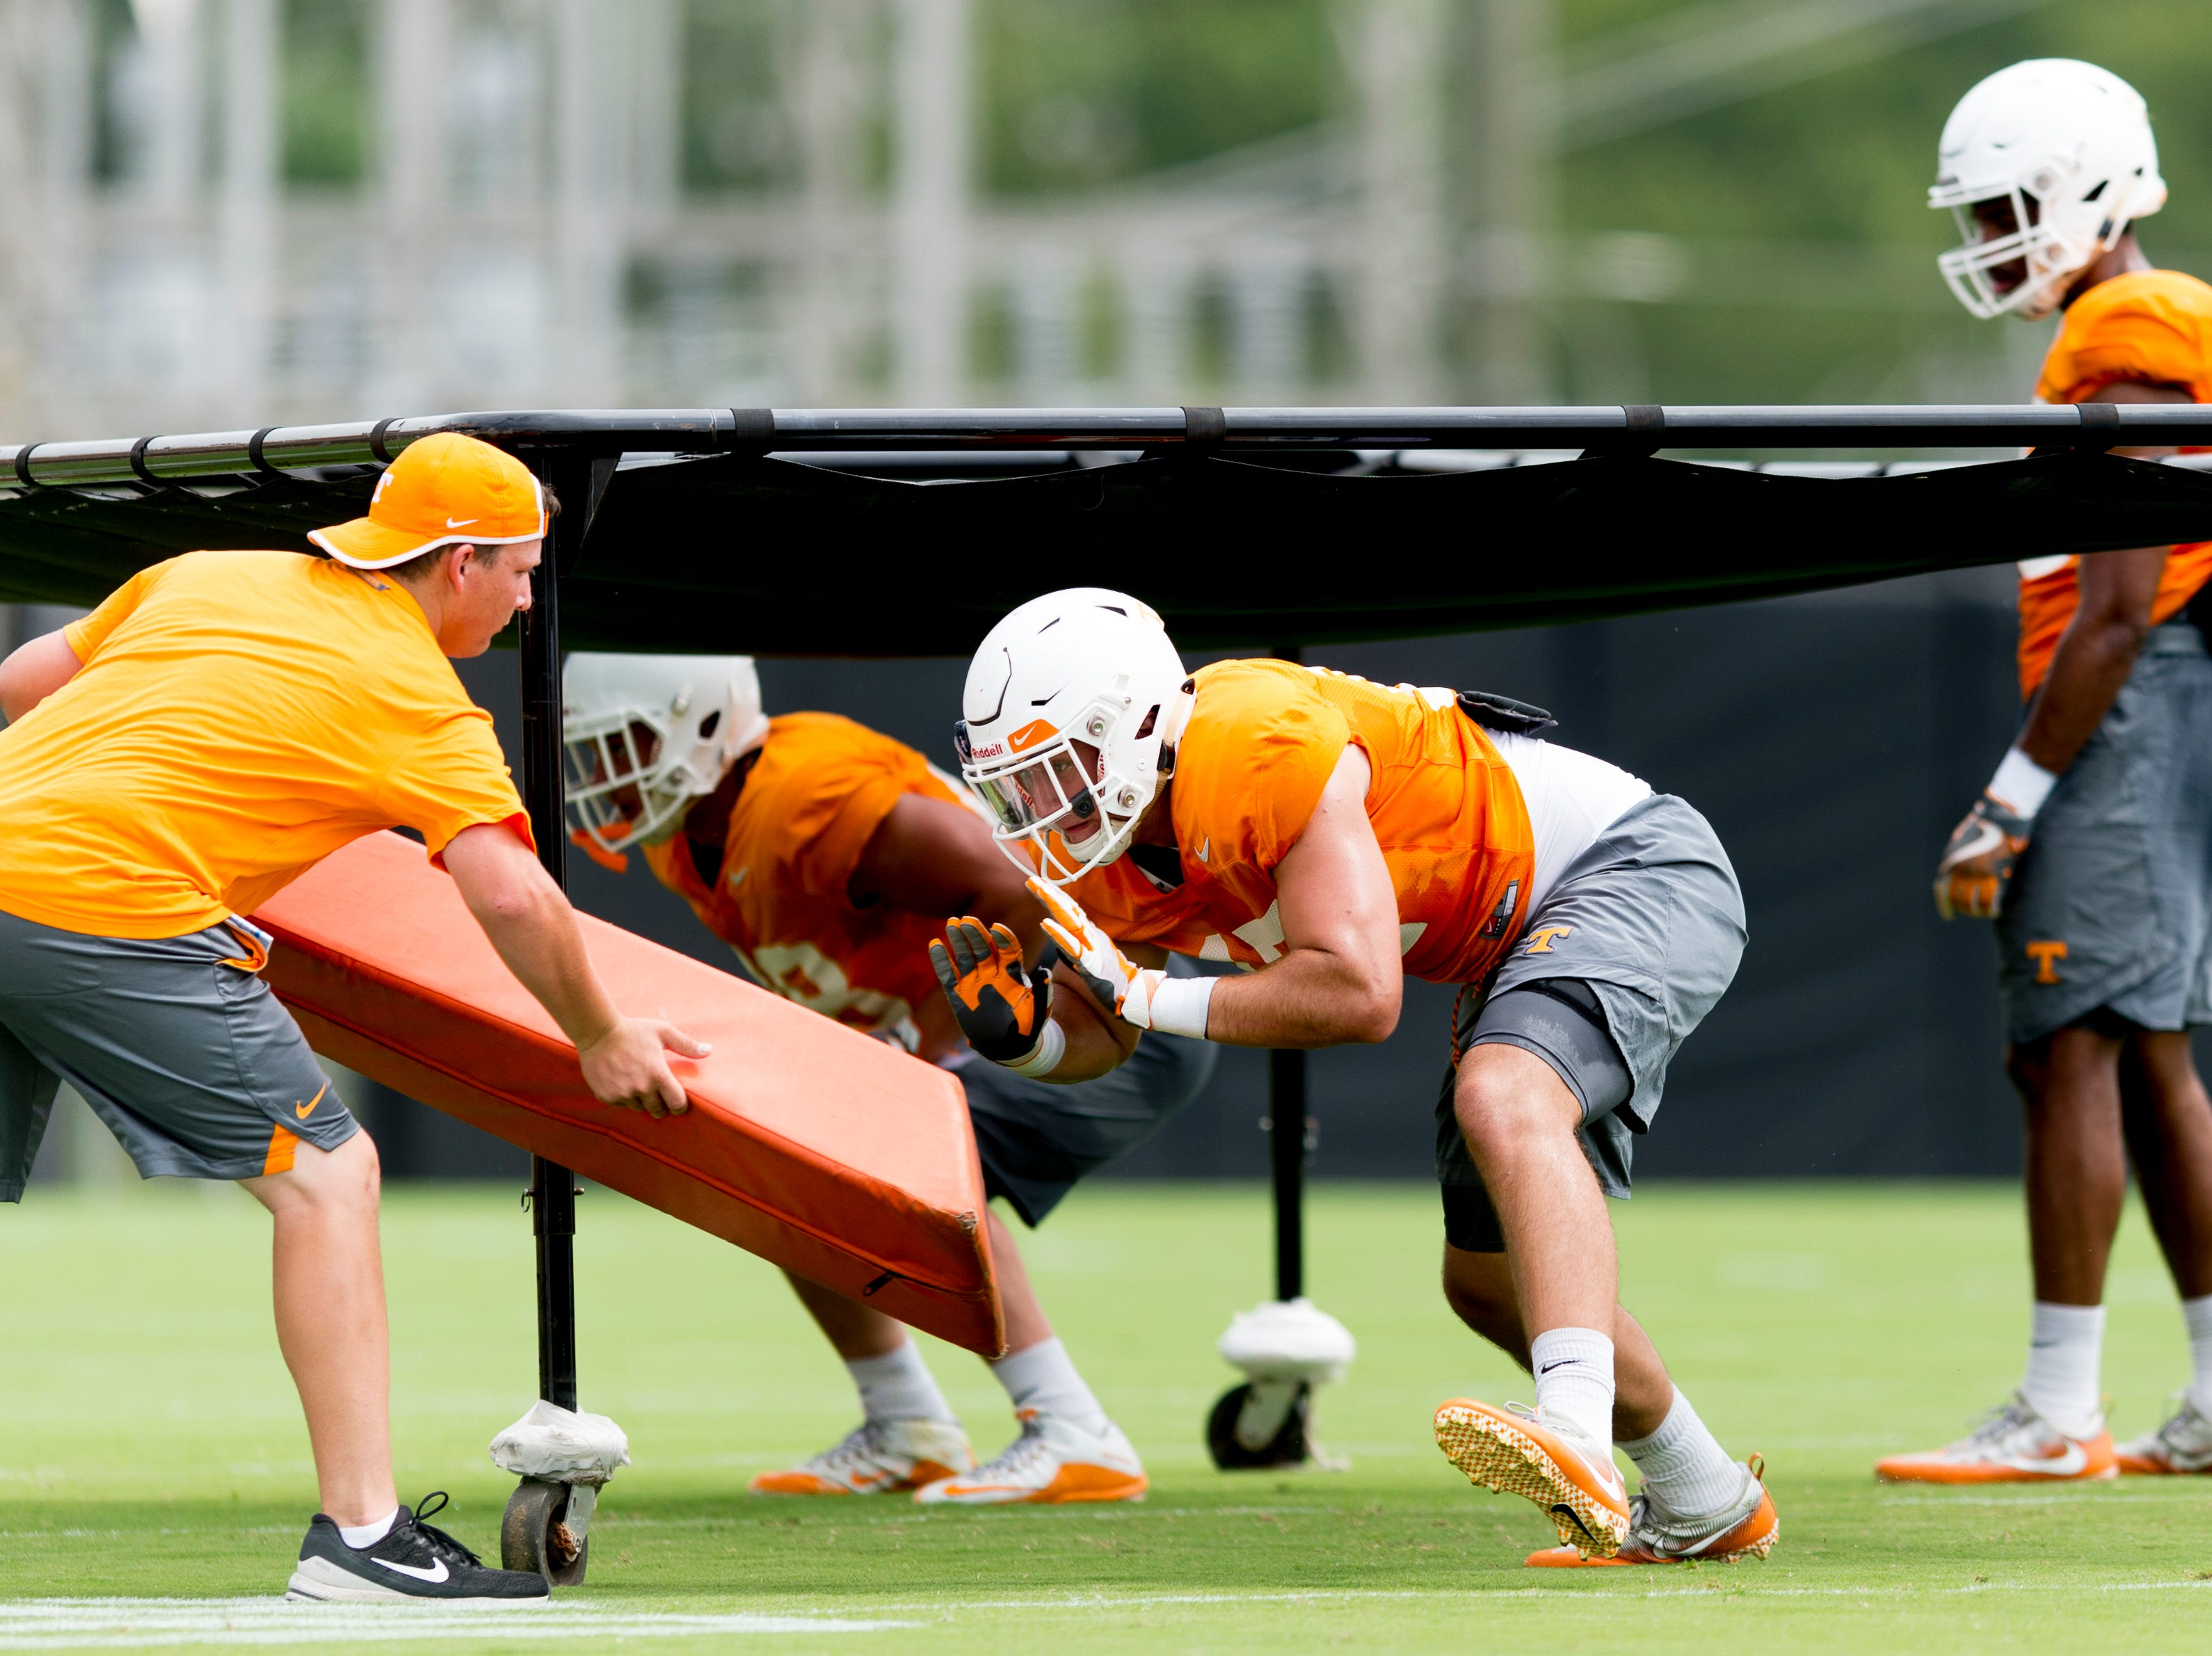 Tennessee linebacker Dillon Bates (17) does a drill during Tennessee football practice at Haslam Field in Knoxville, Tennessee on Wednesday, August 15, 2018.